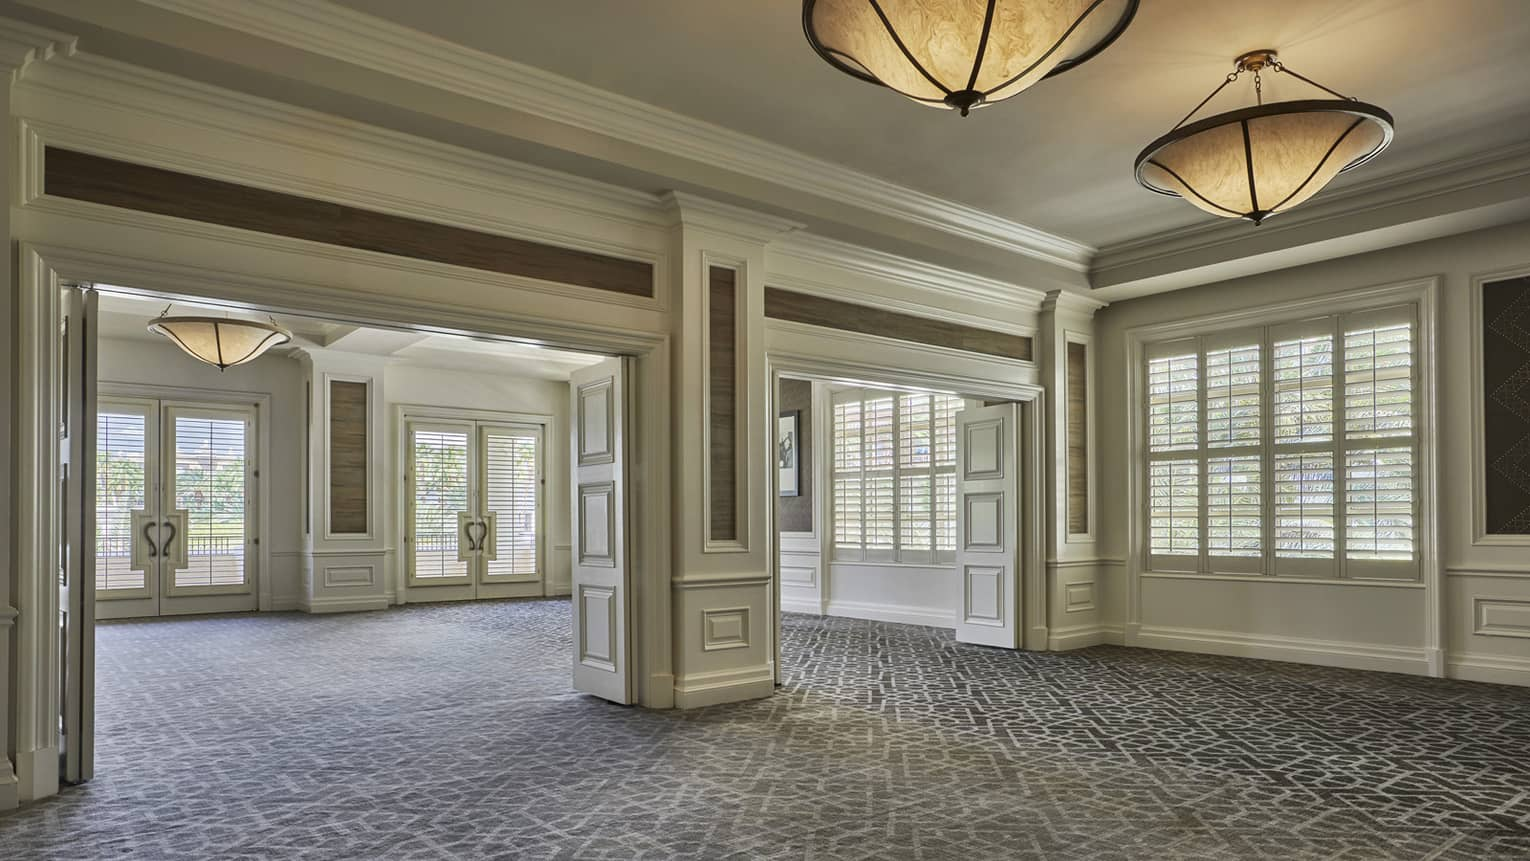 Mesquite event space, open carpeted room with sunny windows, large ceiling lights